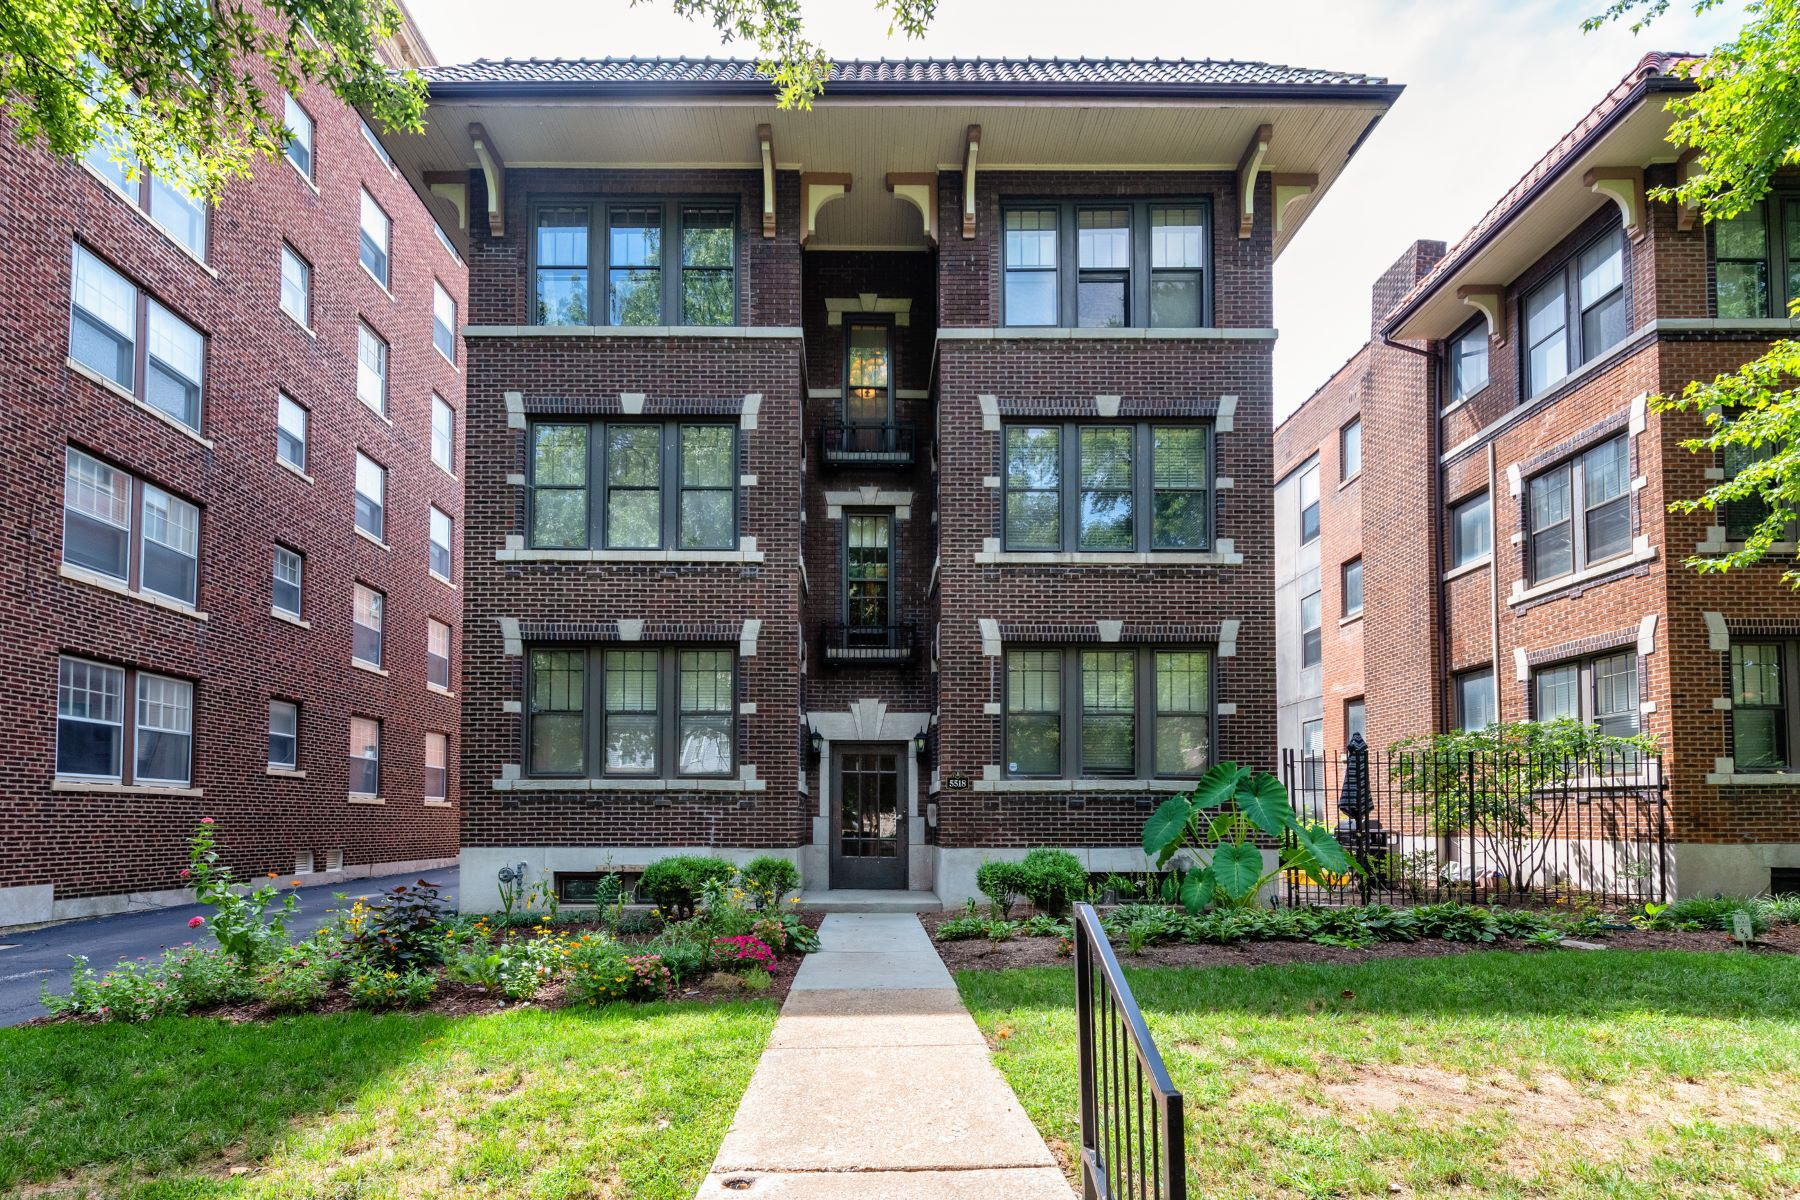 Condominiums for Sale at DeBaliviere Place Condo 5518 Waterman Boulevard #31 St. Louis, Missouri 63112 United States